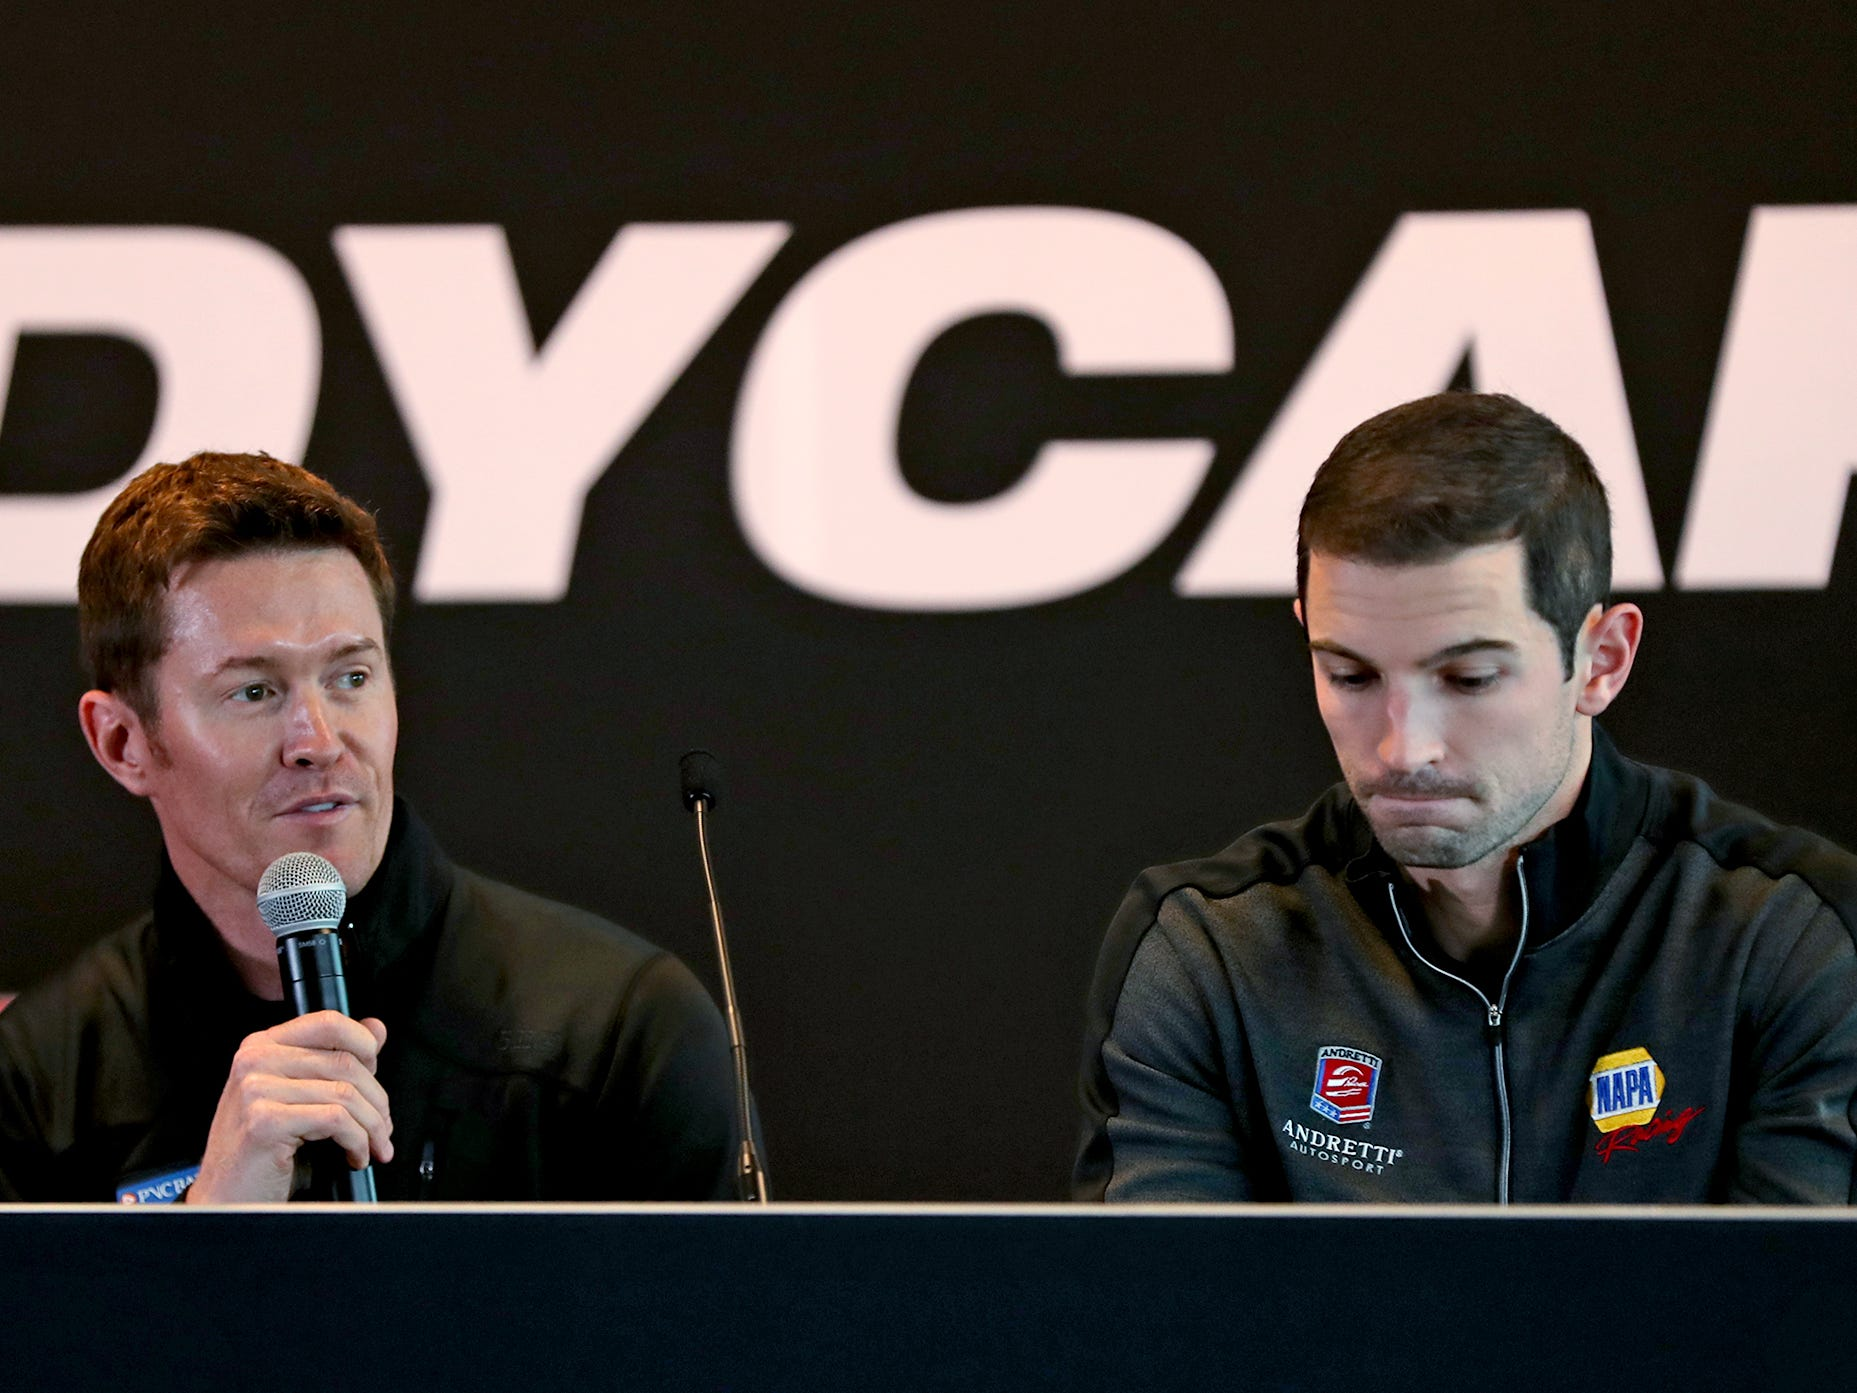 IndyCar racer Scott Dixon, left, speaks as racer Alexander Rossi listens during a press conference on the IndyCar announcement of their TV schedule, during a press conference at Indianapolis Motor Speedway, Wednesday, Jan. 9, 2019.